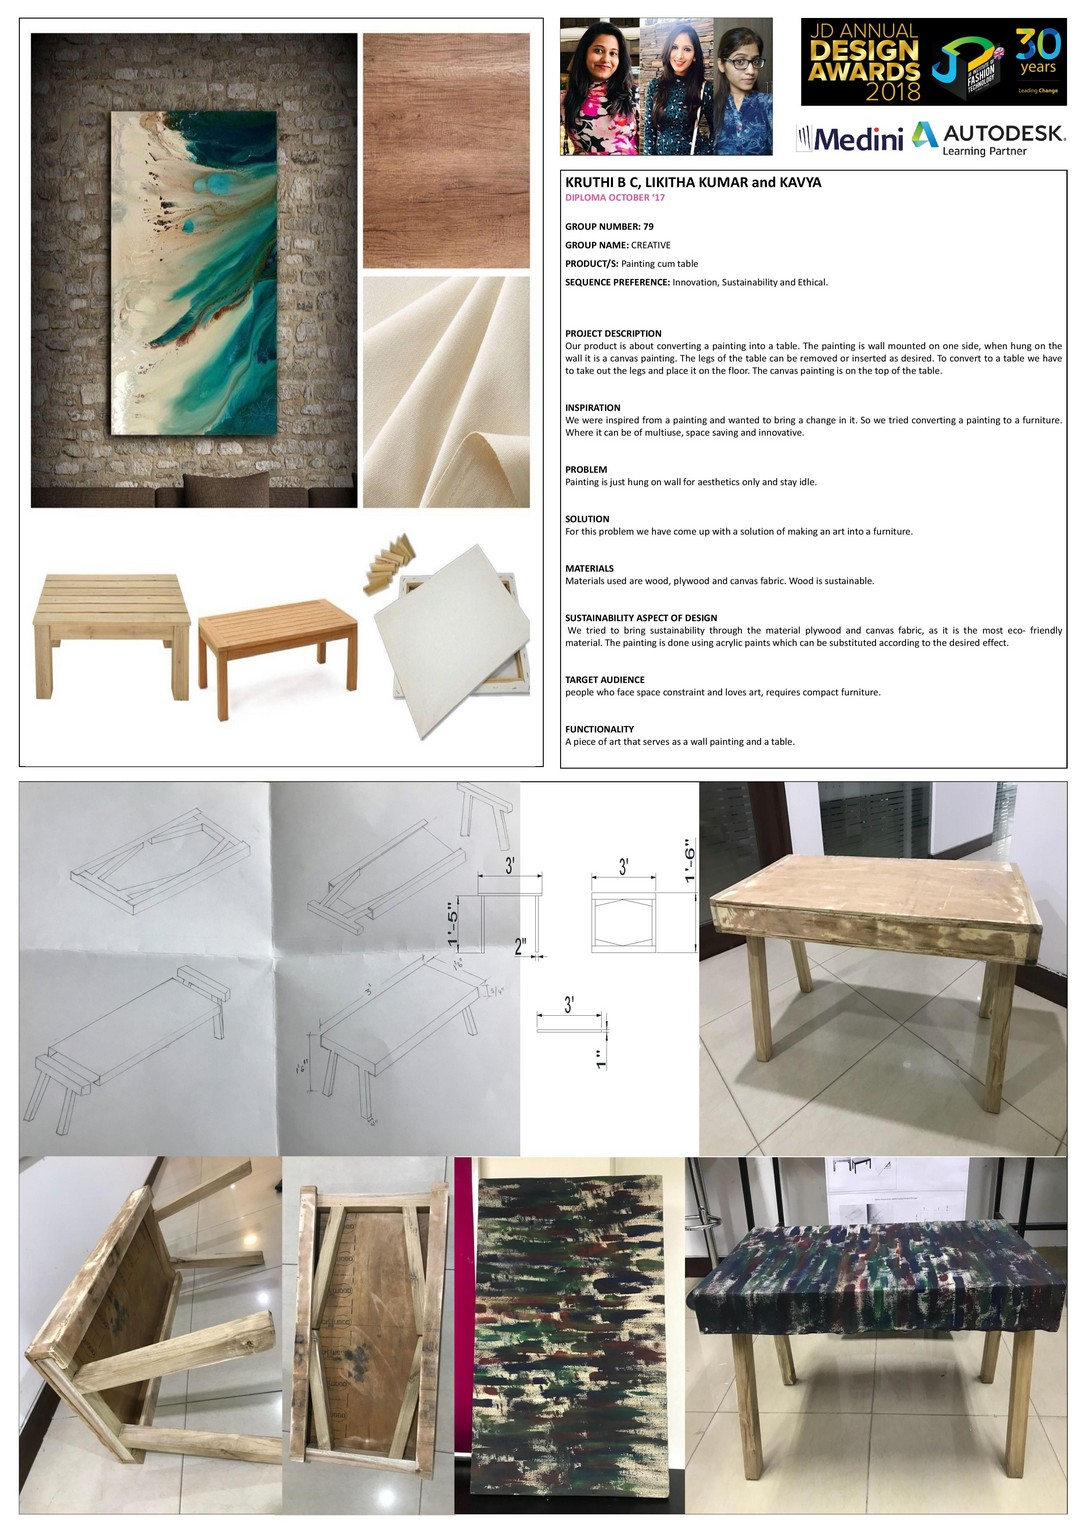 Painting cum table– Change – JD Annual Design Awards 2018 | Designer: Kruthi, Likitha, Kavya | Photography : Jerin Nath (@jerin_nath)  painting cum table - painting cum - Painting cum table– Change – JD Annual Design Awards 2018